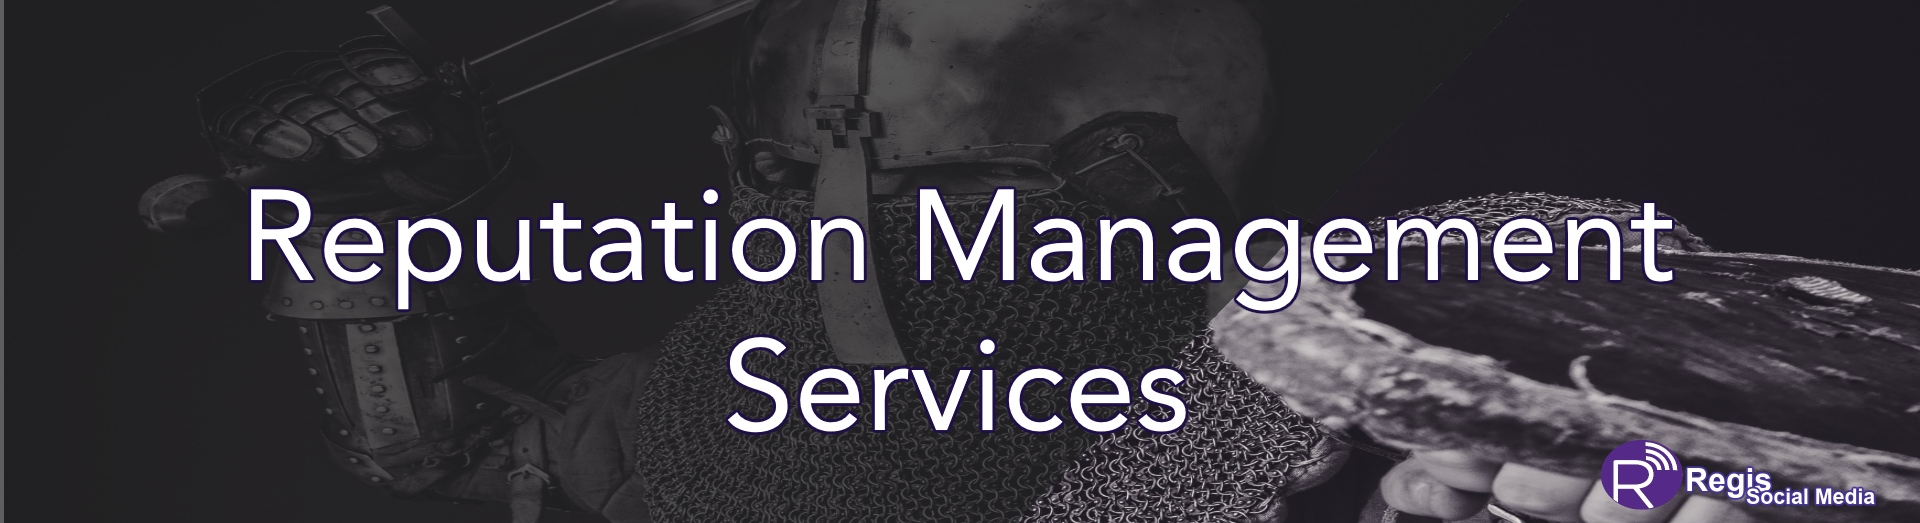 reputation-managment-services-provided-by-Regis-Social-Media-for-your-local-business